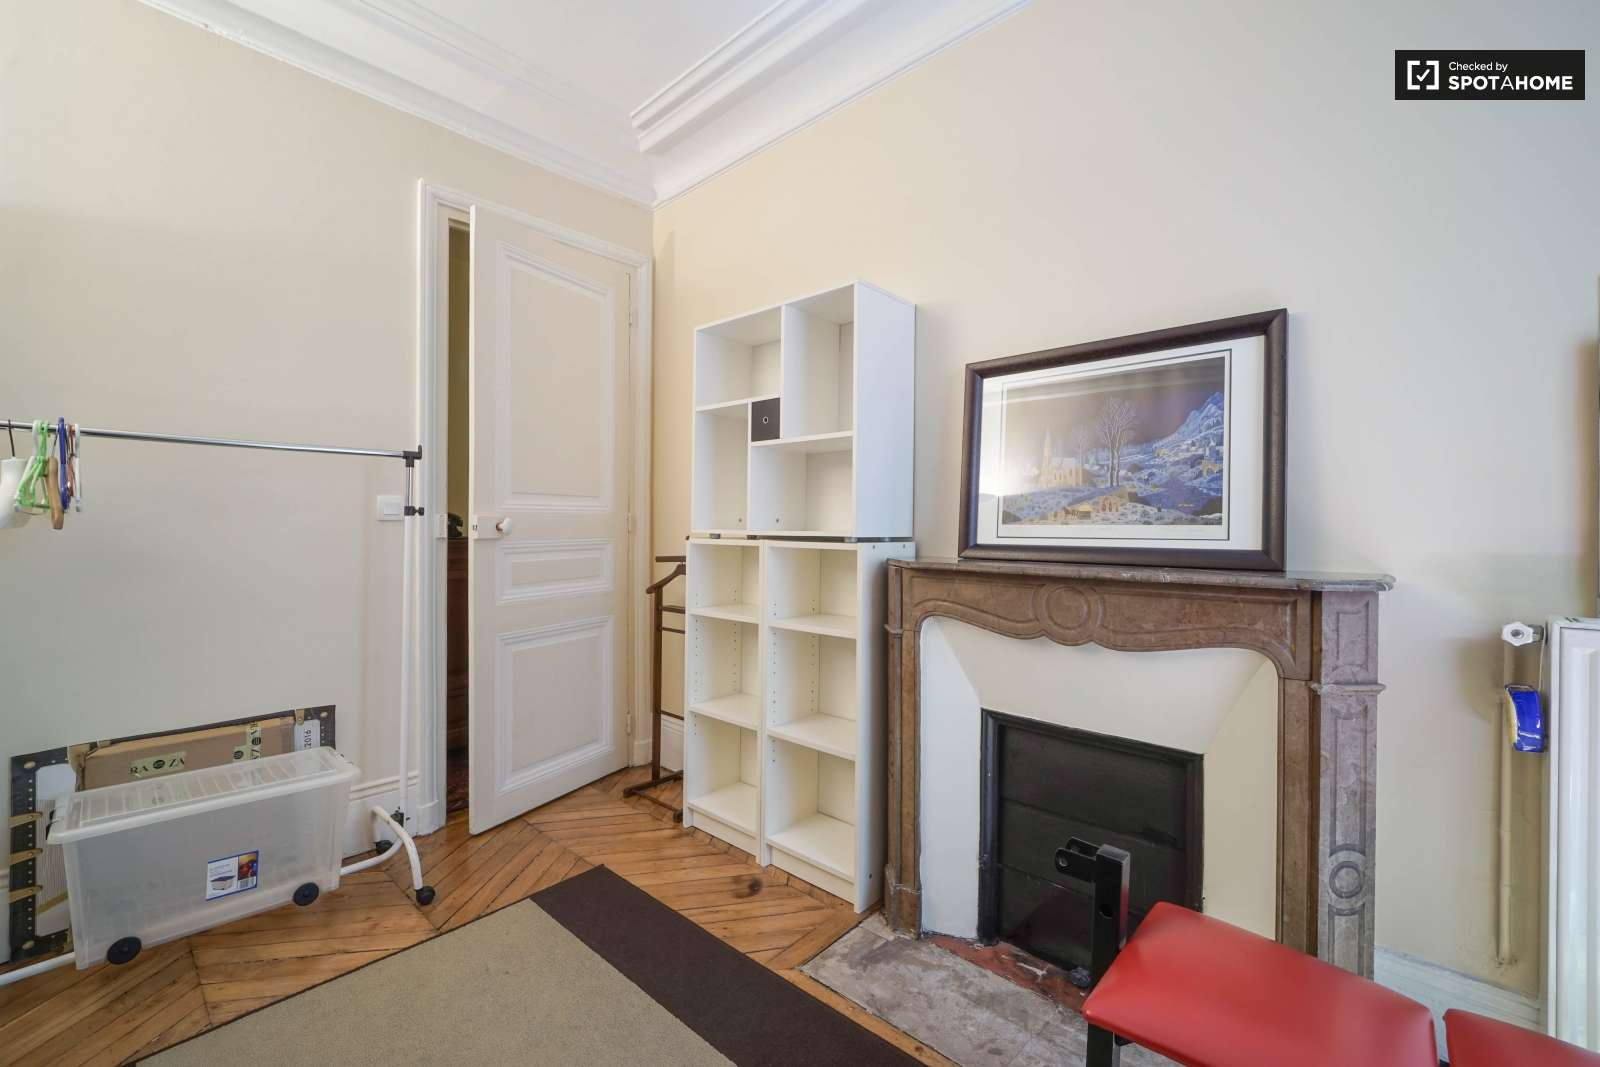 Double Bed In Room For Rent In A Nicely Decorated 2 Bedroom